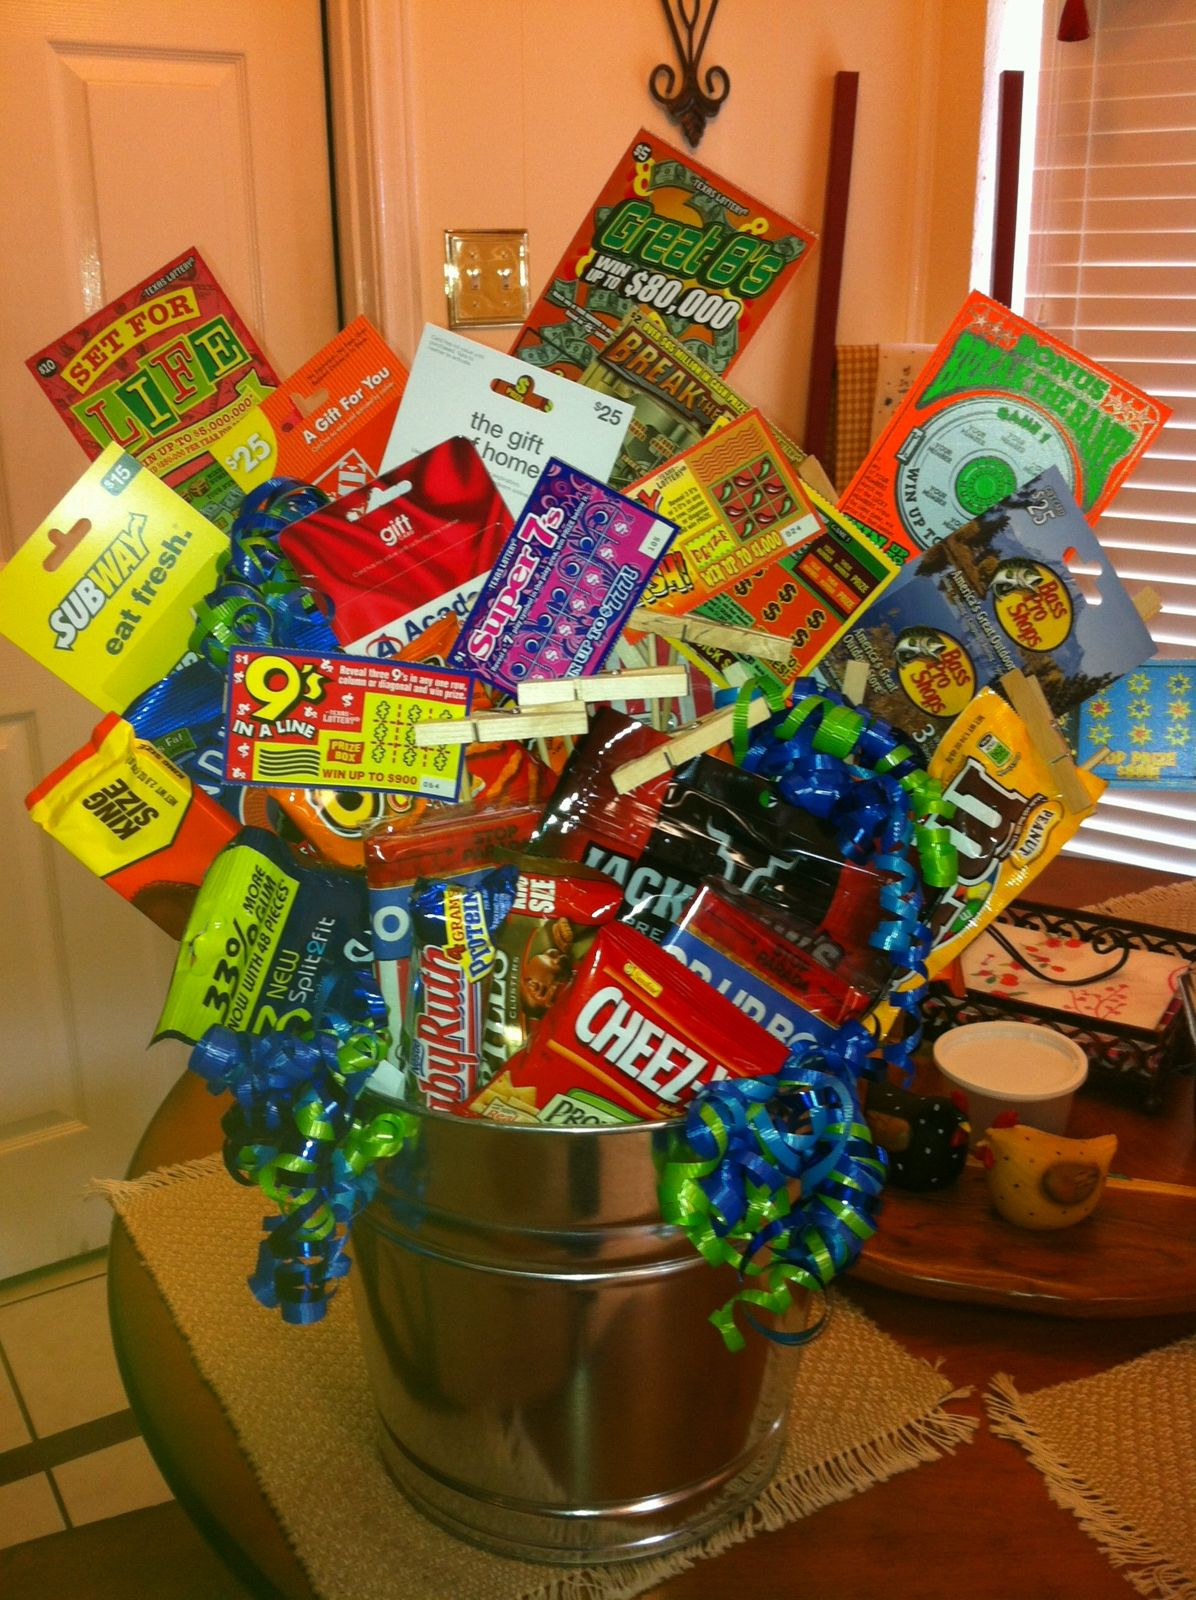 31st Wedding Anniversary Gift For Husband : beef jerkey wedding anniversary gifts anniversary ideas male gifts man ...